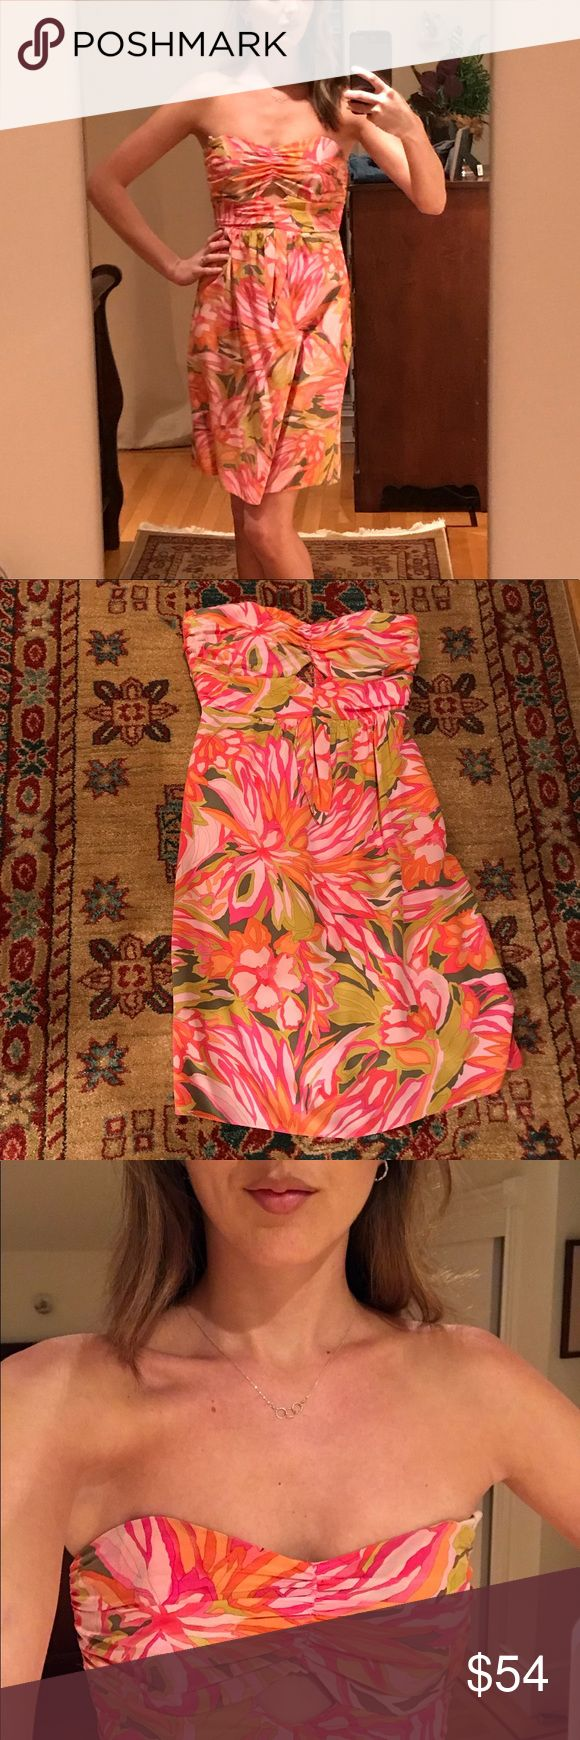 Tropical Alice & Trixie Silk Dress This gorgeous silk dress will stay up all night due to nice boning in the top! The silk is top-notch, and the pattern is so fun. Great dress for a night out or a summer wedding! Like-new condition and recently dry-cleaned. Alice & Trixie Dresses Midi